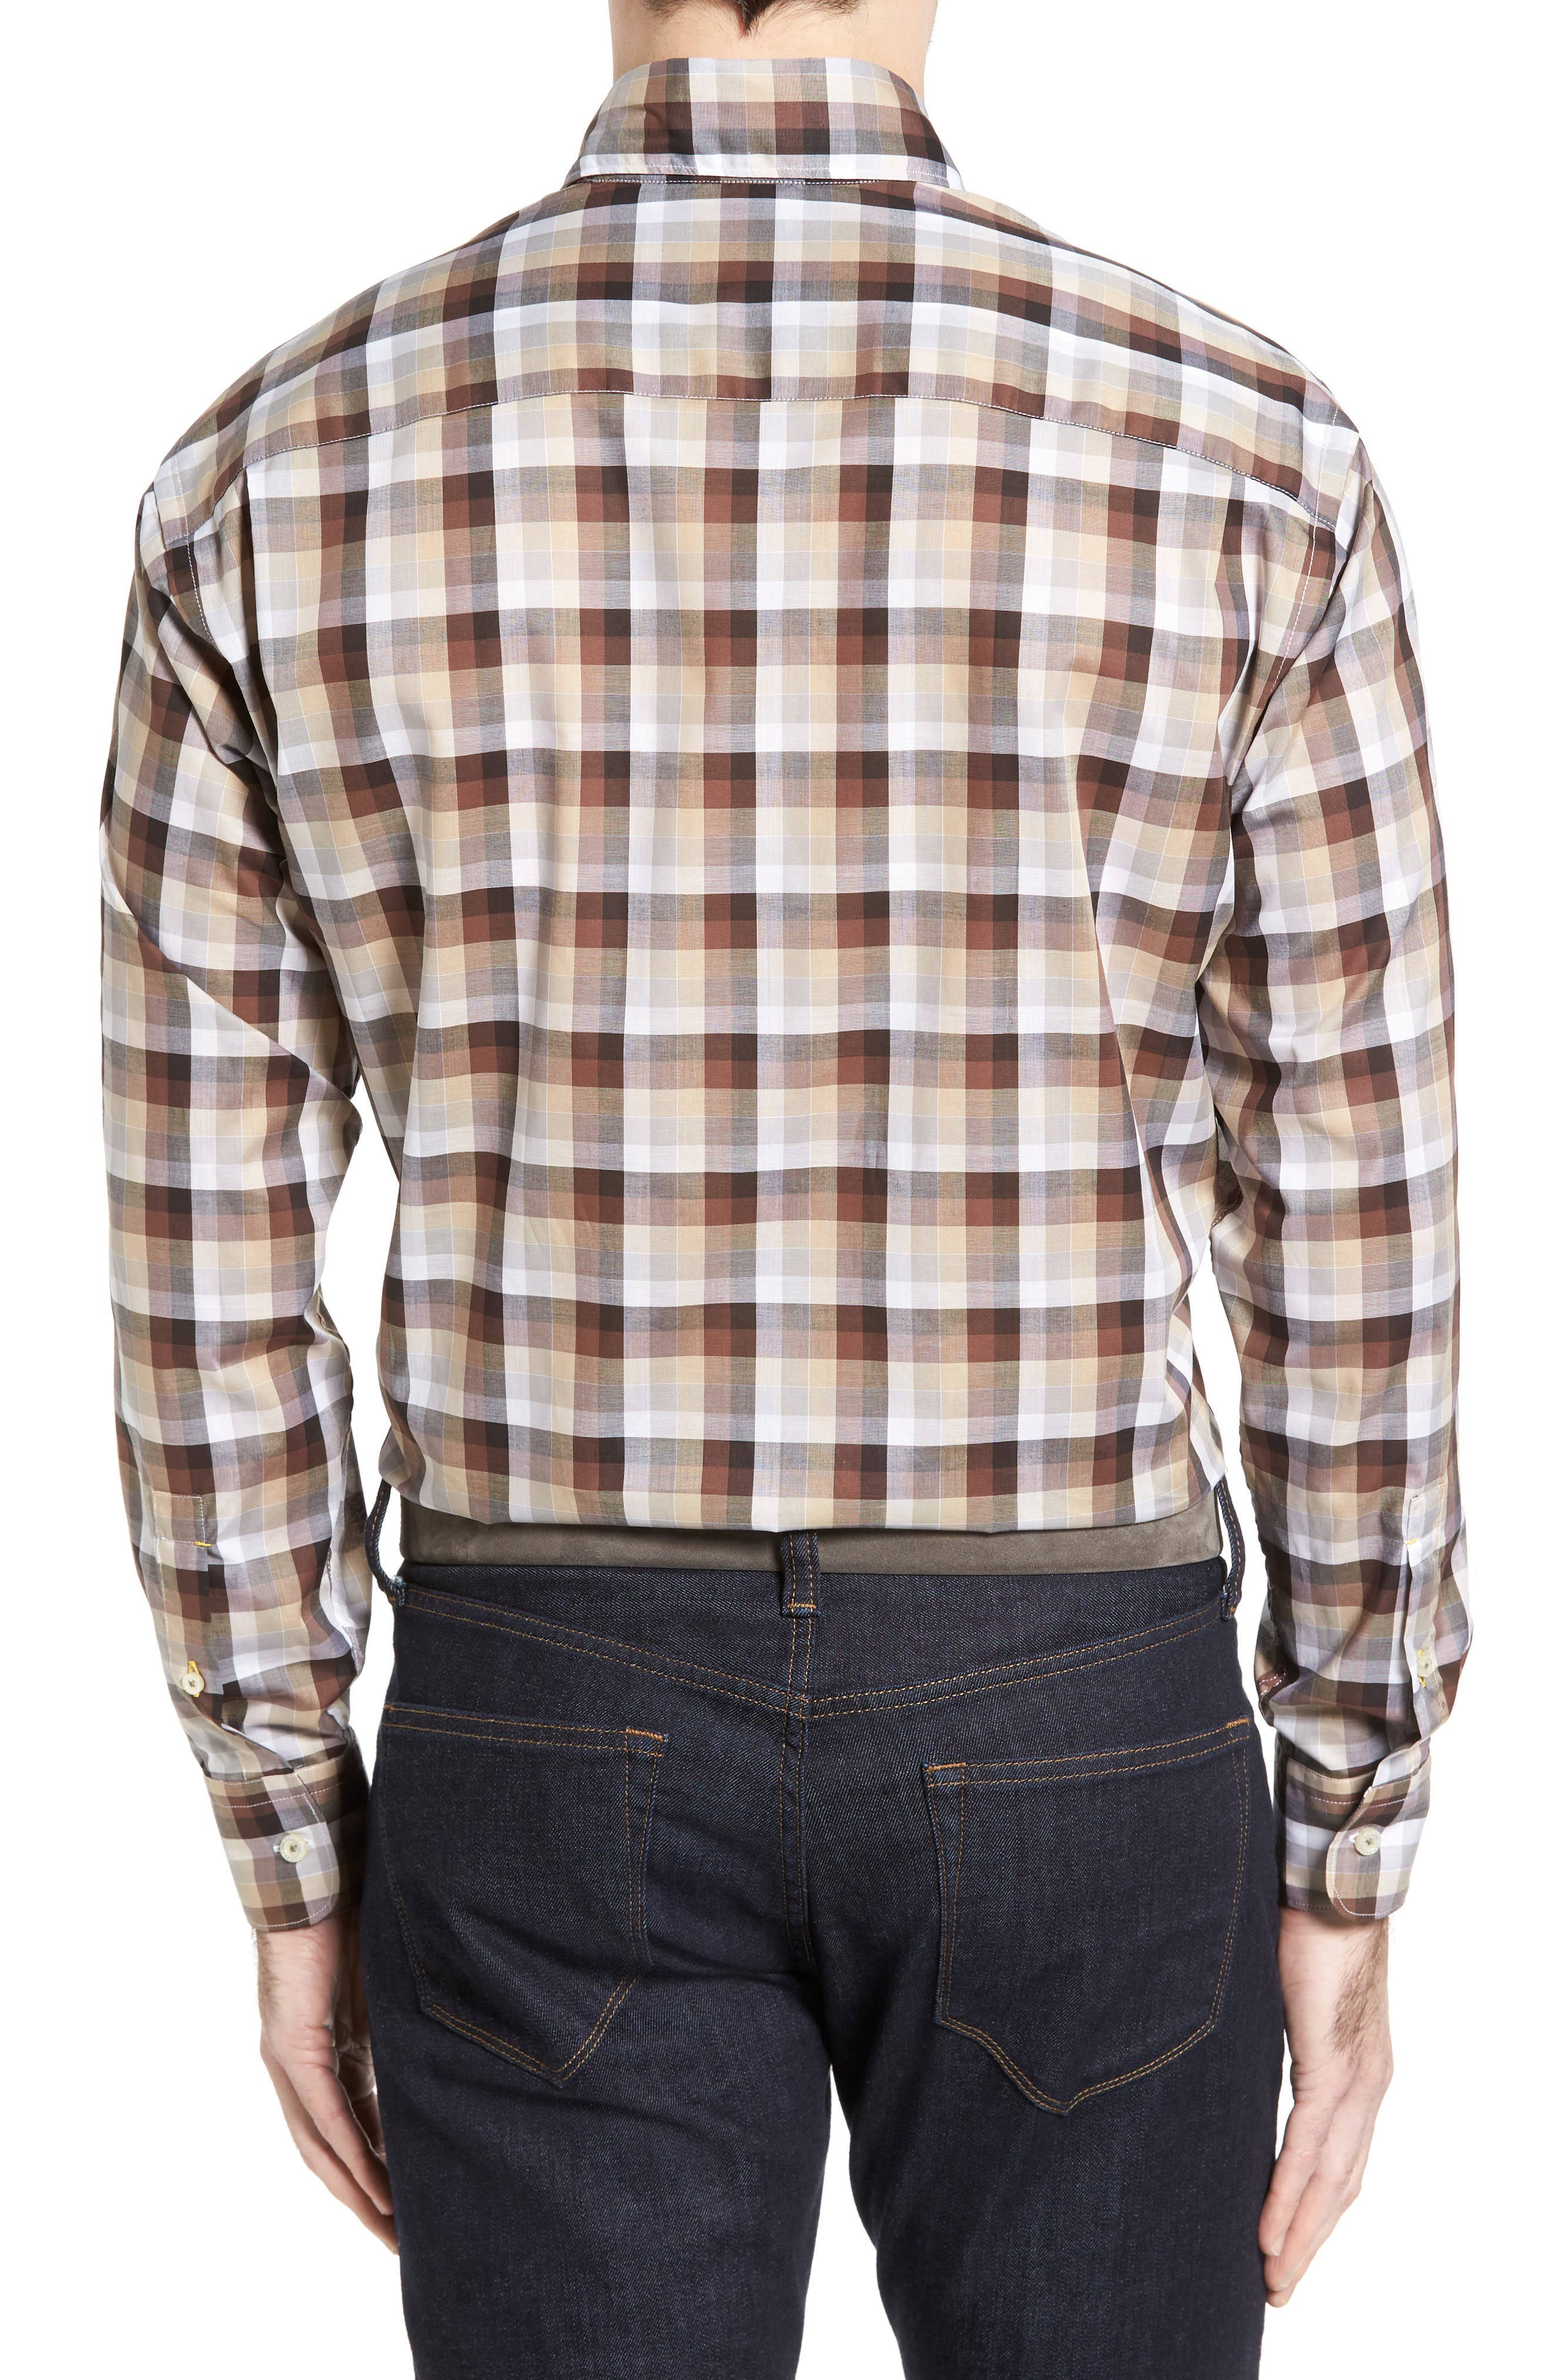 Anderson Classic Fit Check Sport Shirt,                             Alternate thumbnail 2, color,                             200